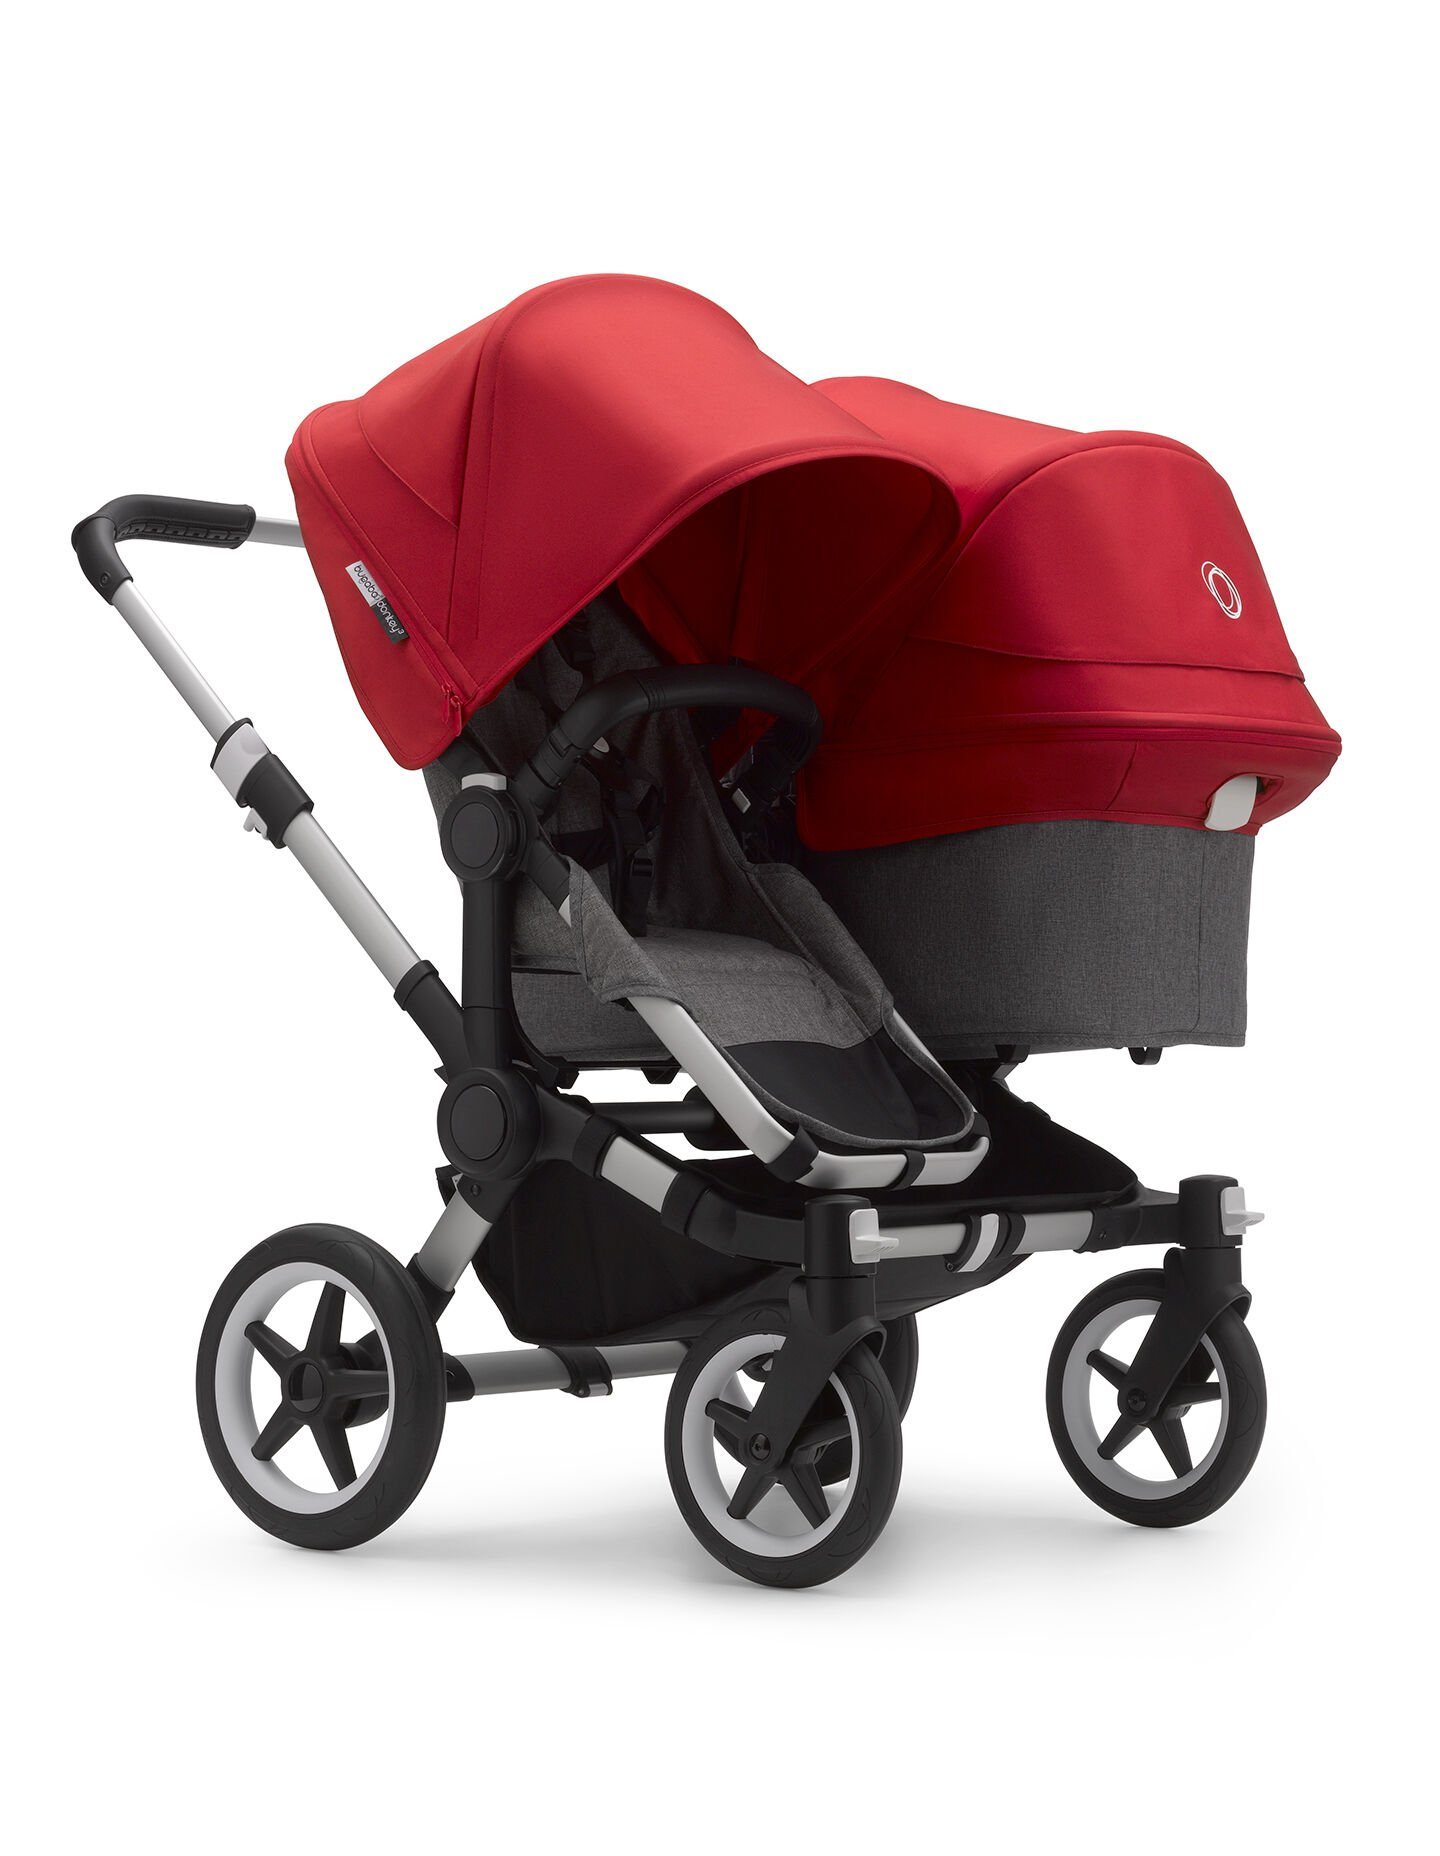 Bugaboo Donkey 3 | Convertible double strollers | Bugaboo DE